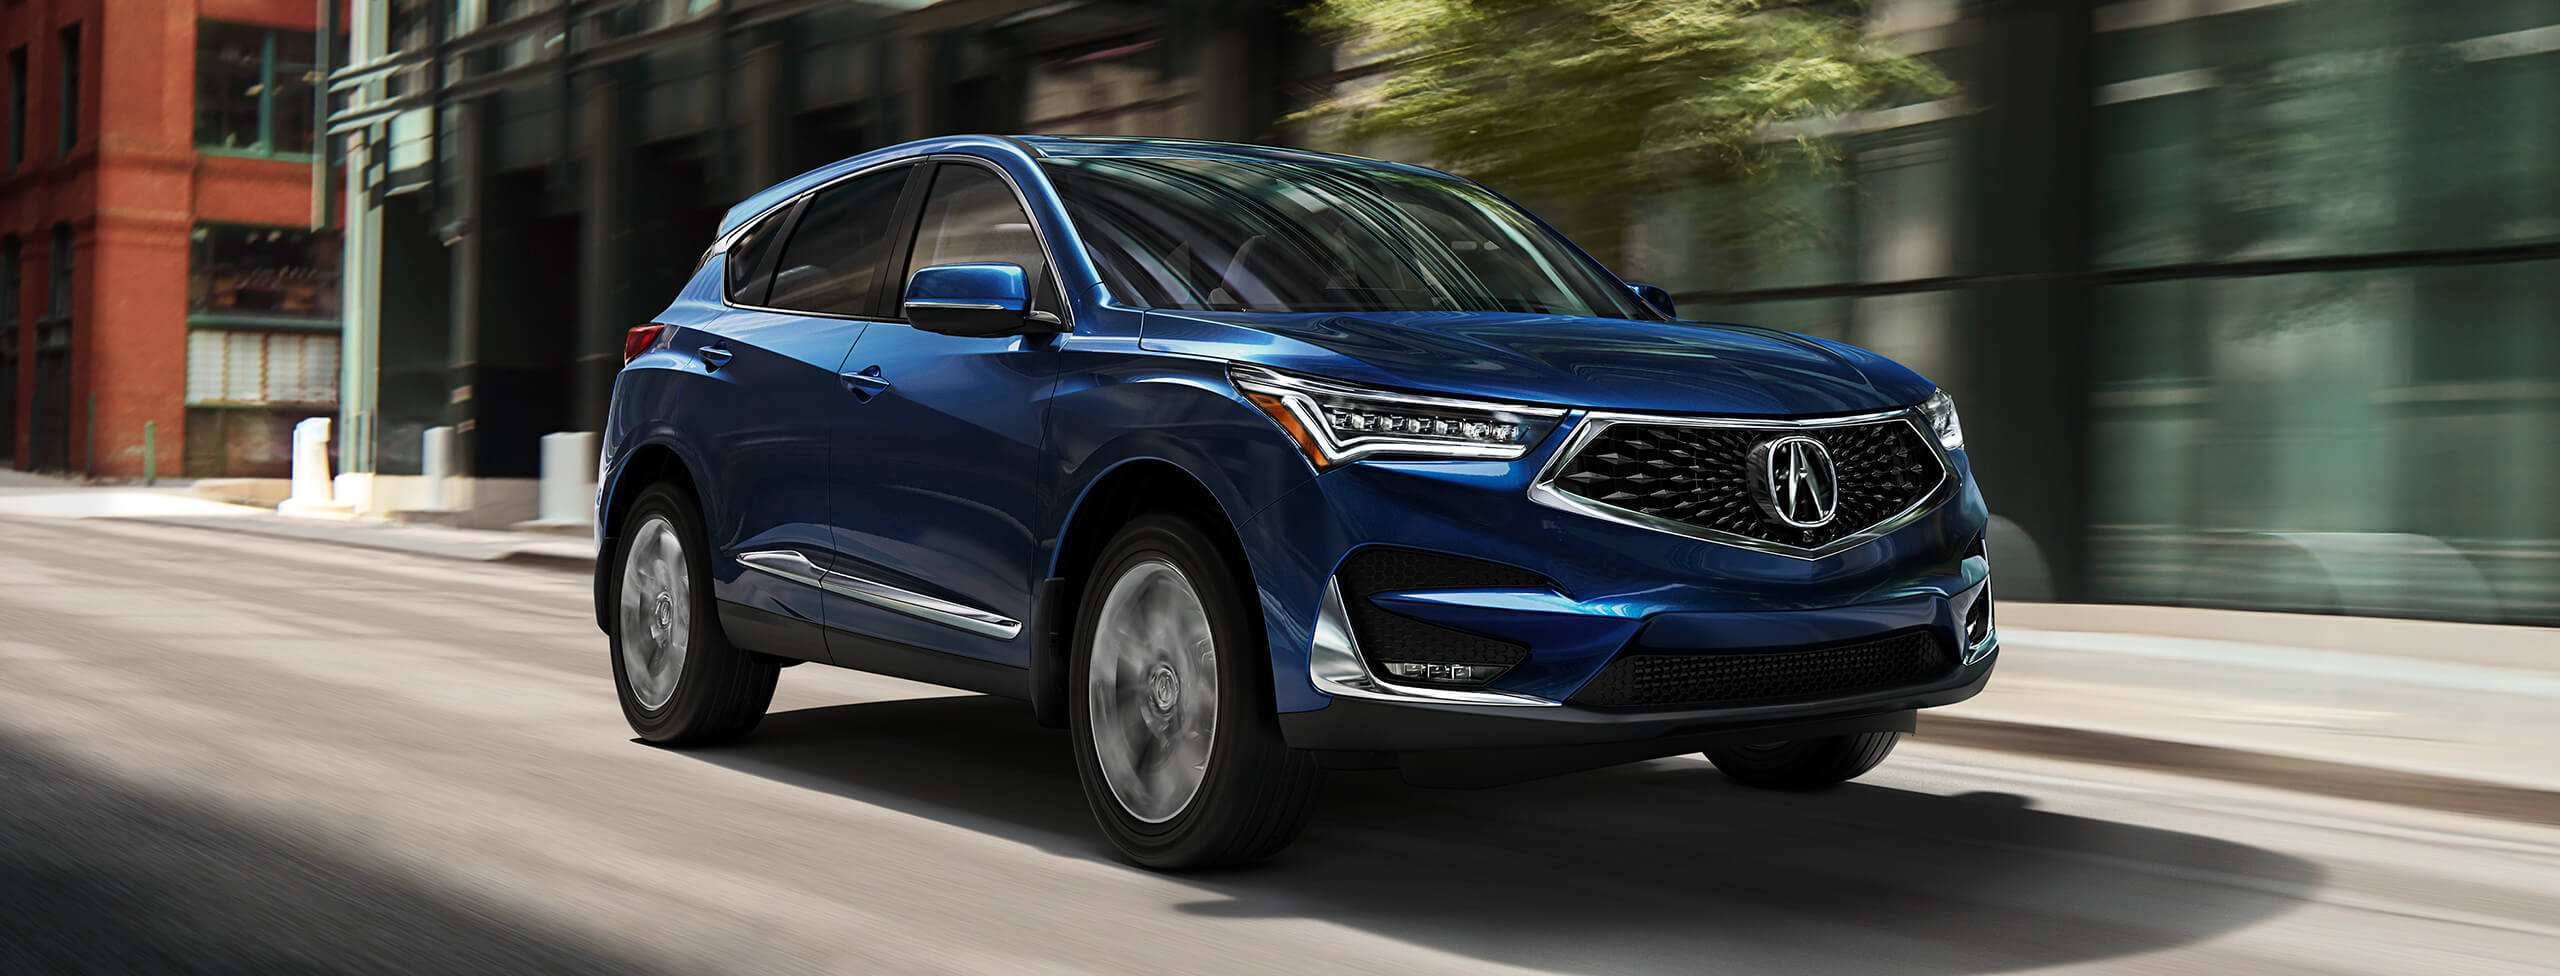 46 Concept of 2020 Acura Rdx Sport Hybrid Price and Review for 2020 Acura Rdx Sport Hybrid